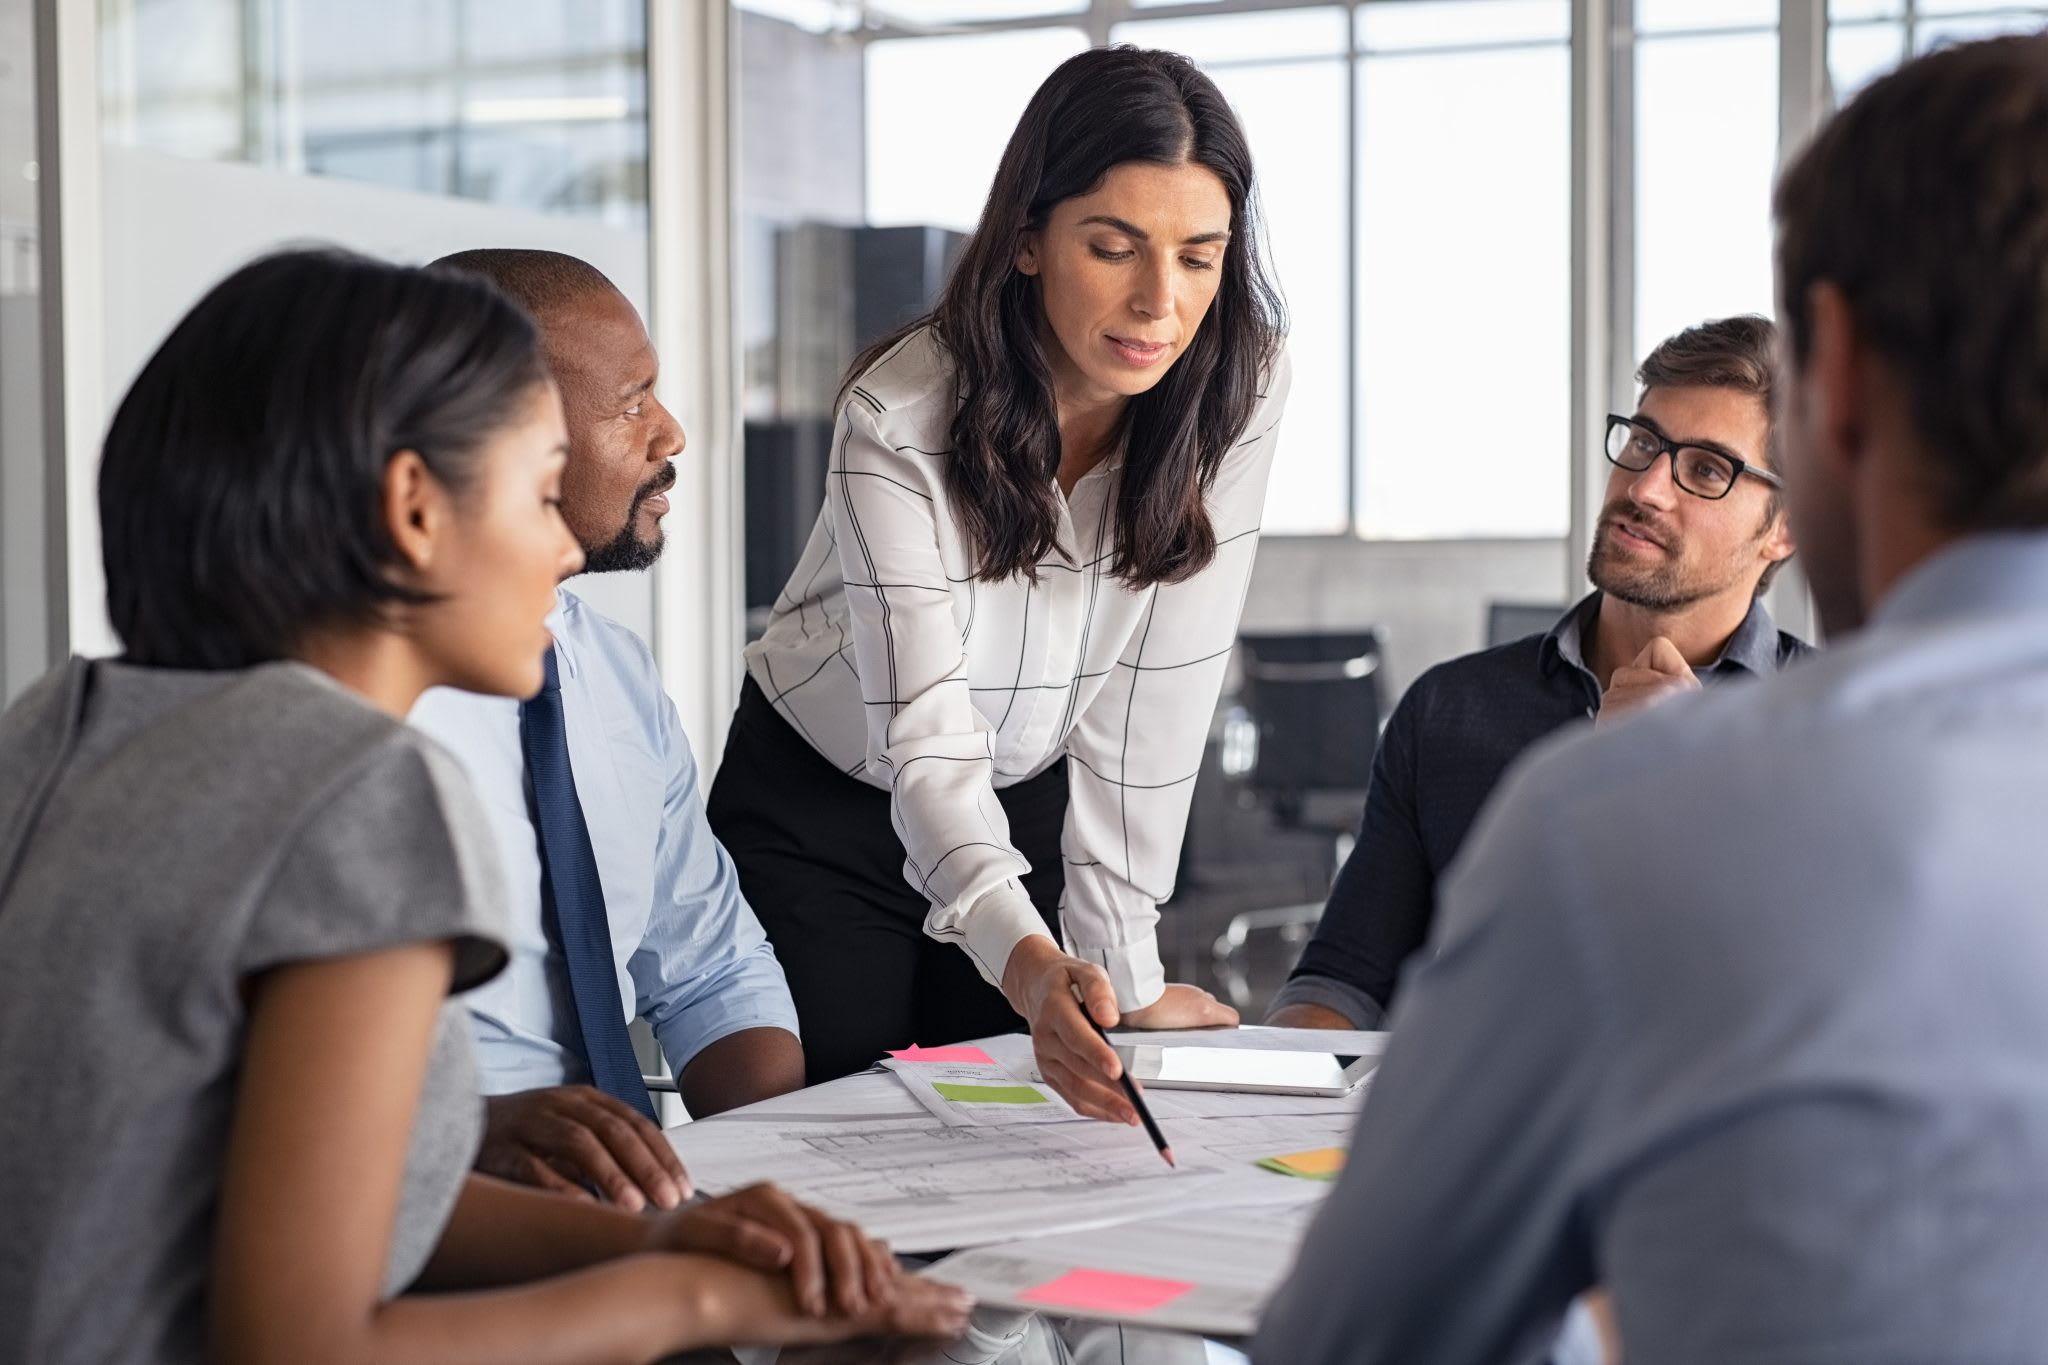 Team of multiethnic architects working on construction plans in meeting room. Engineers and designers discussing project in office. Businesswoman with business team in conference room working on blueprint.